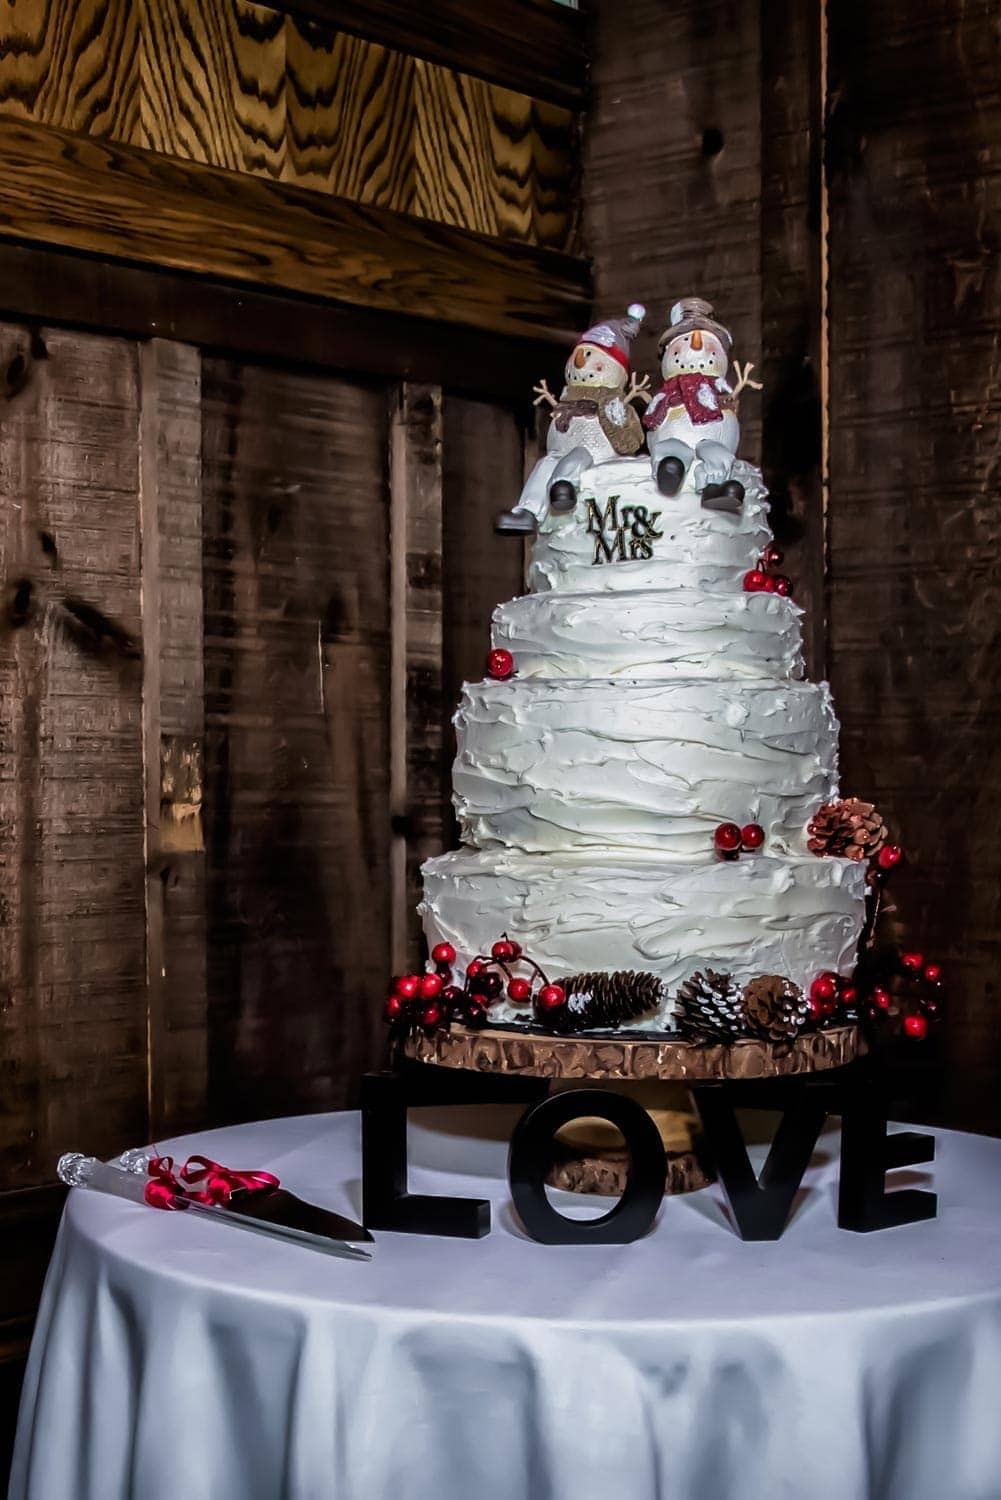 An awesome winter themed wedding cake with snowman wedding cake toppers at a Lower Deck Tap Room wedding.